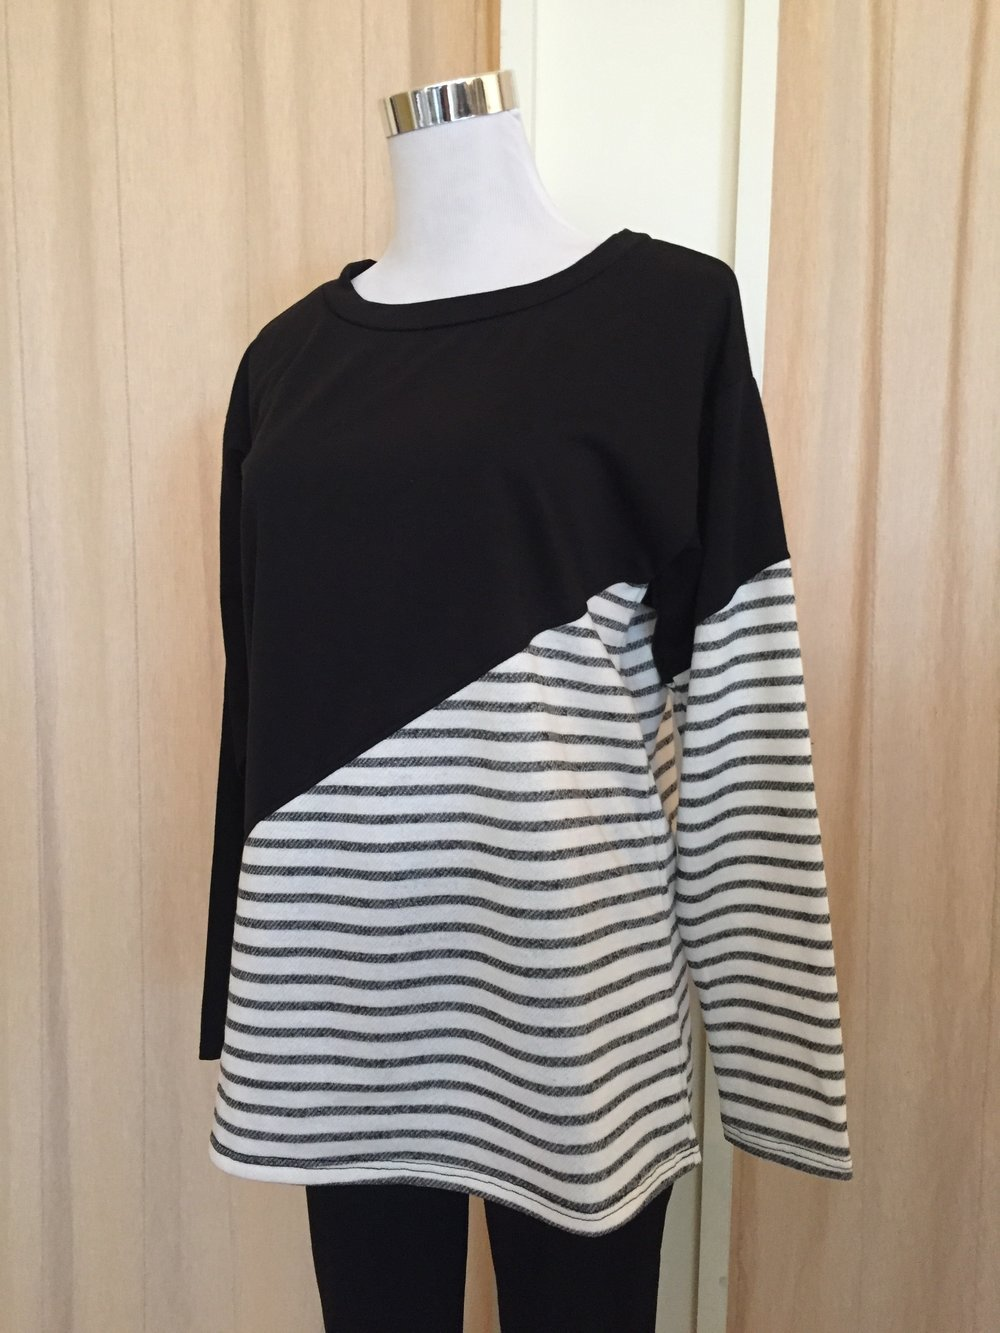 Asymmetrical Striped Top ($32)